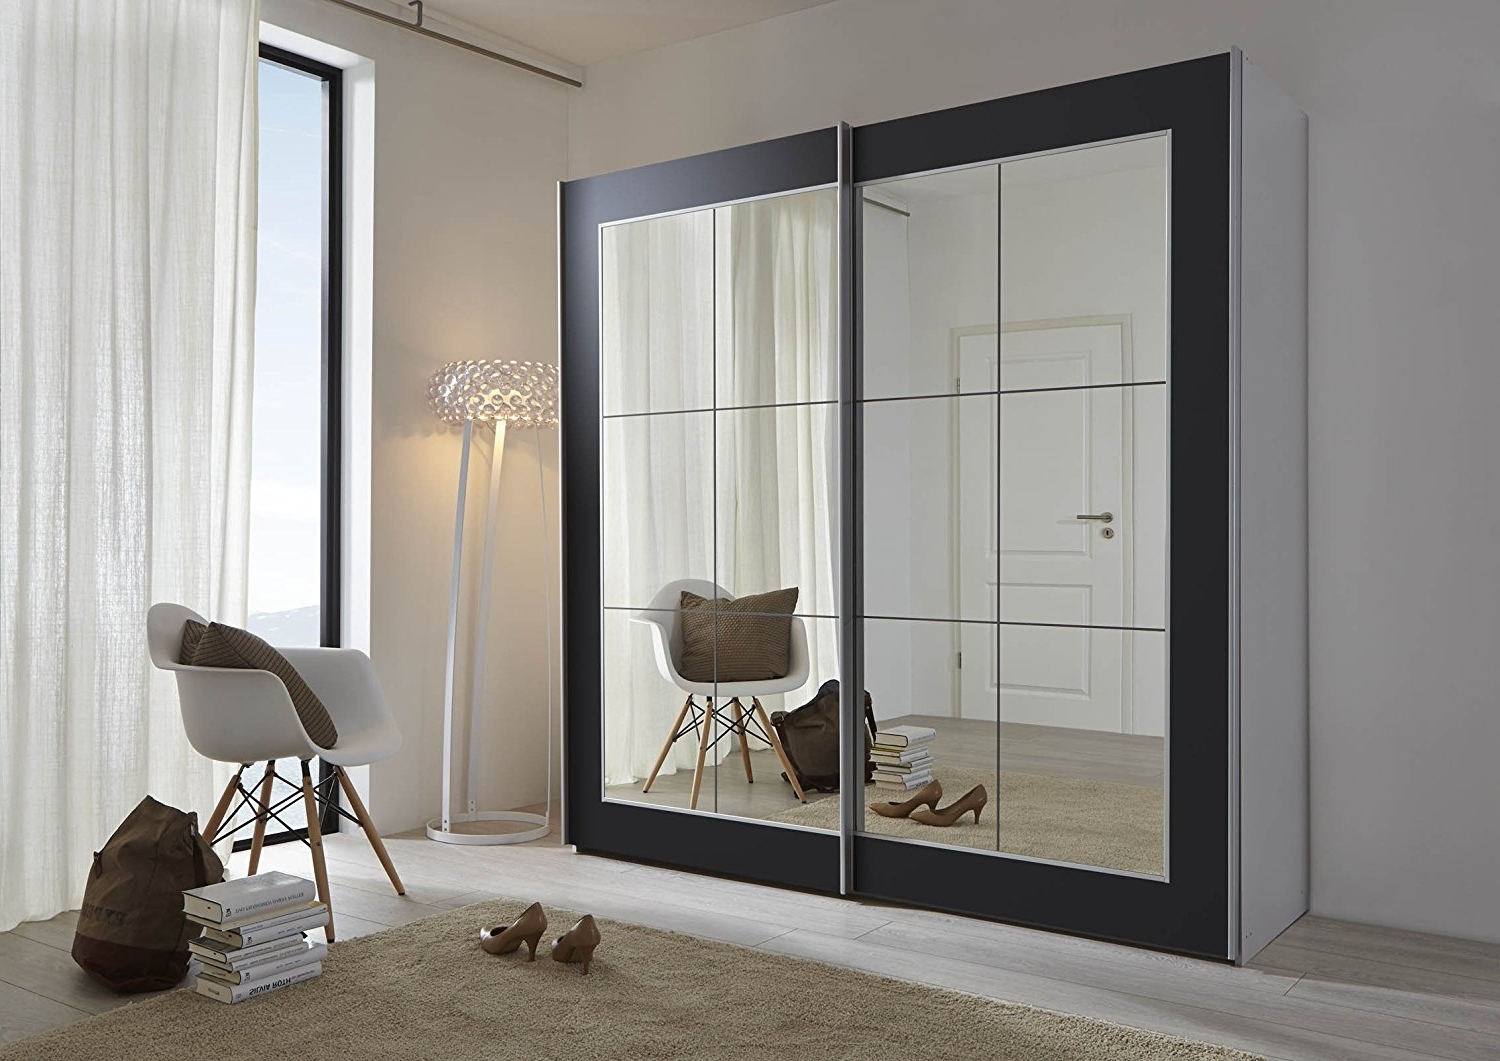 Large Black Wardrobes With Regard To Best And Newest Schlafzimmer Lattice: Black Sliding Door Wardrobe With Mirror (View 6 of 15)